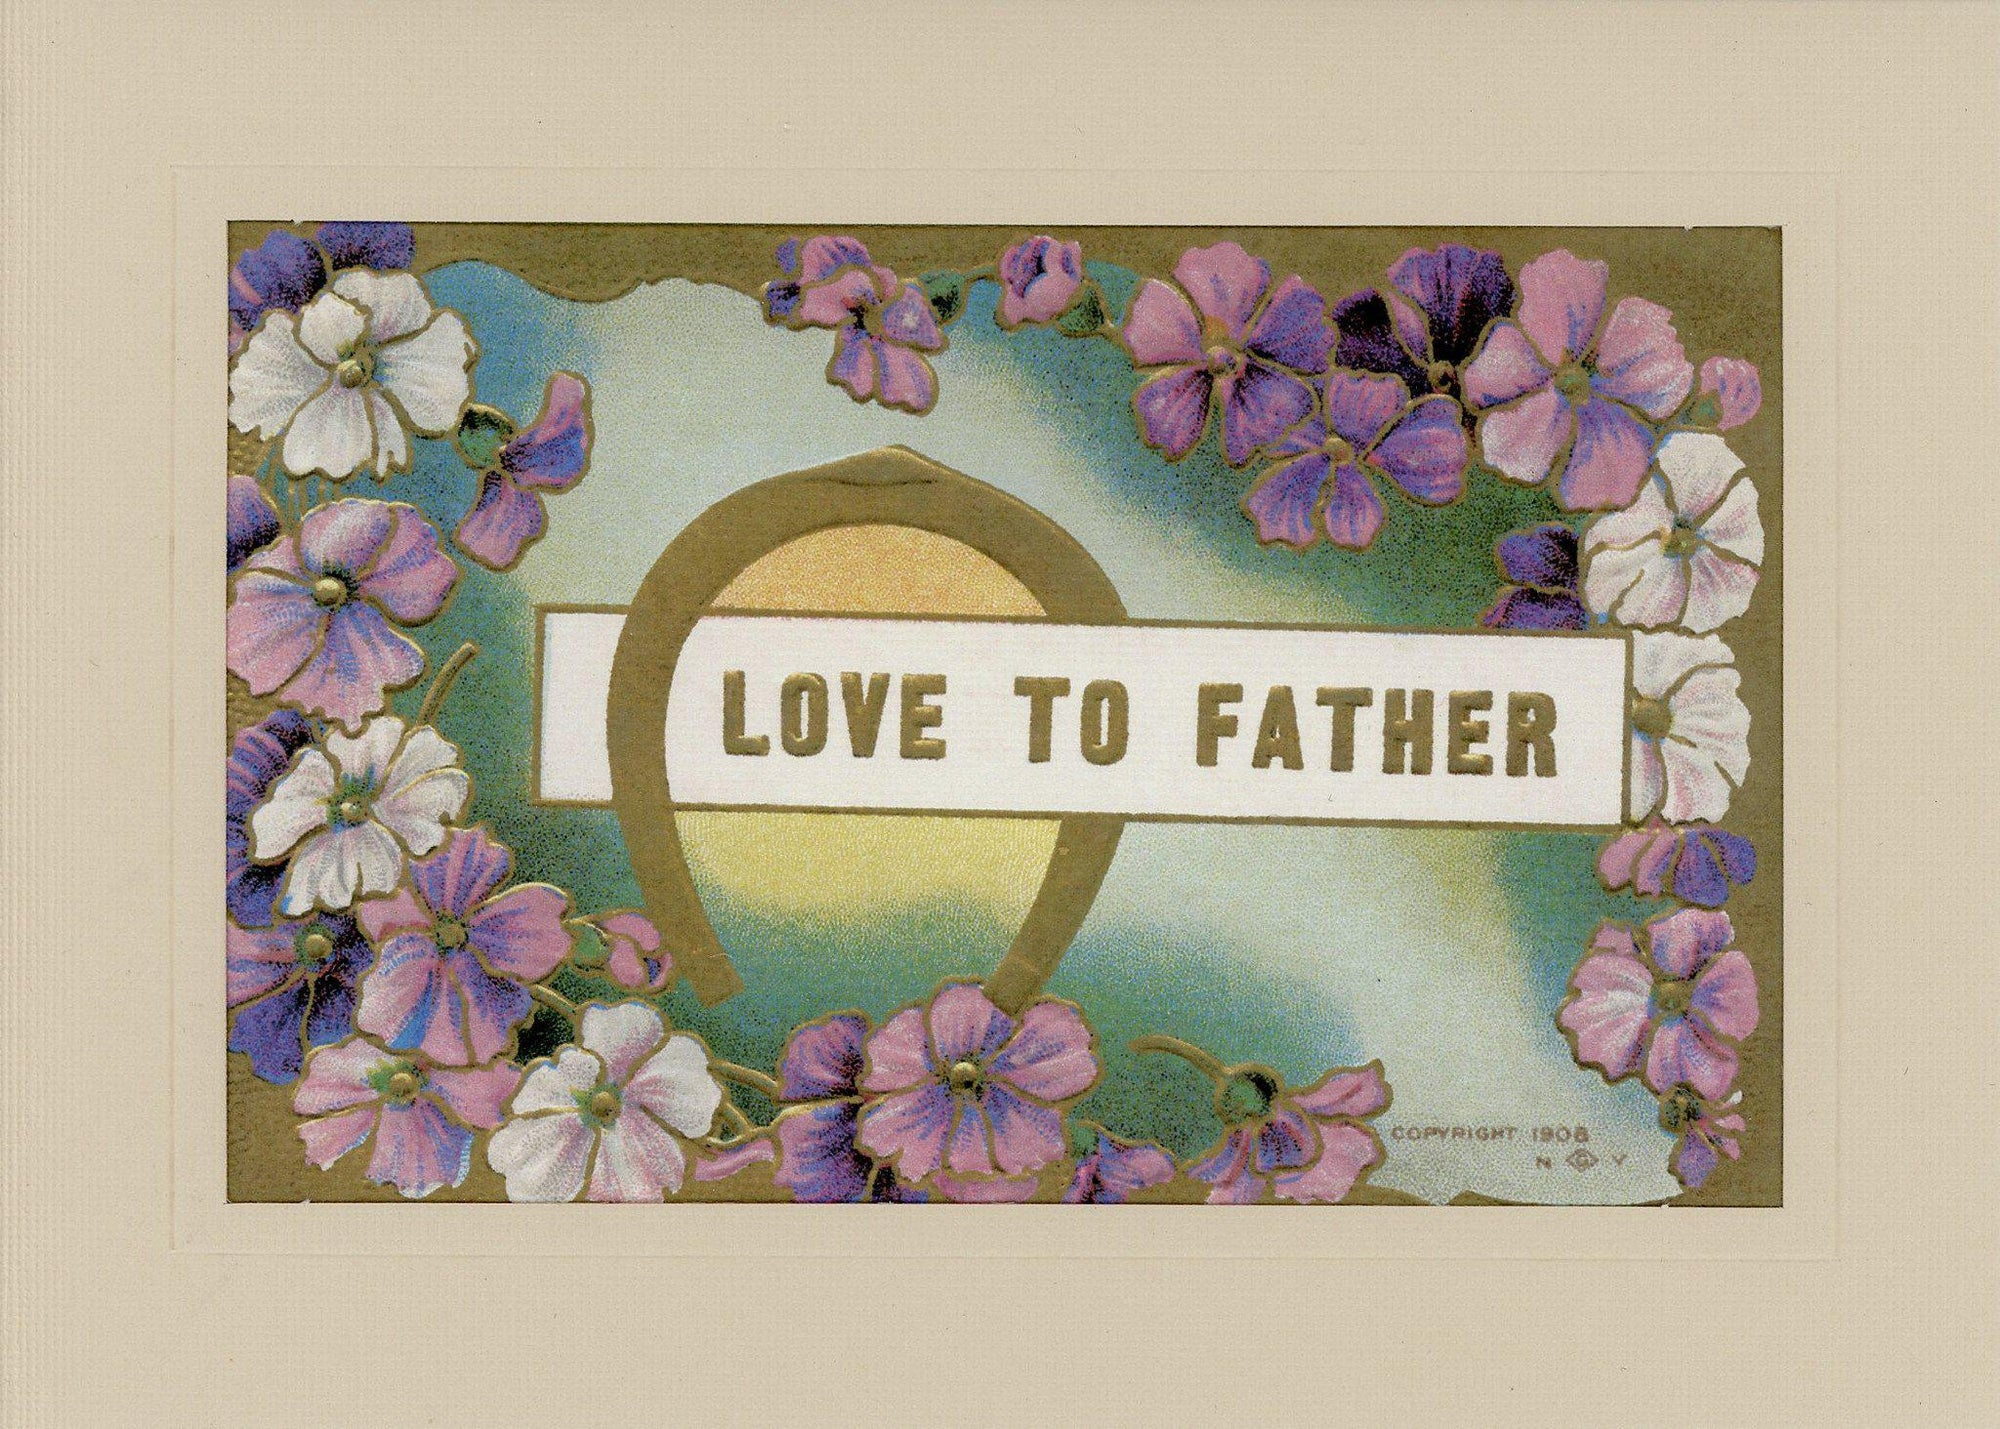 Love to Father-Greetings from the Past-Plymouth Cards